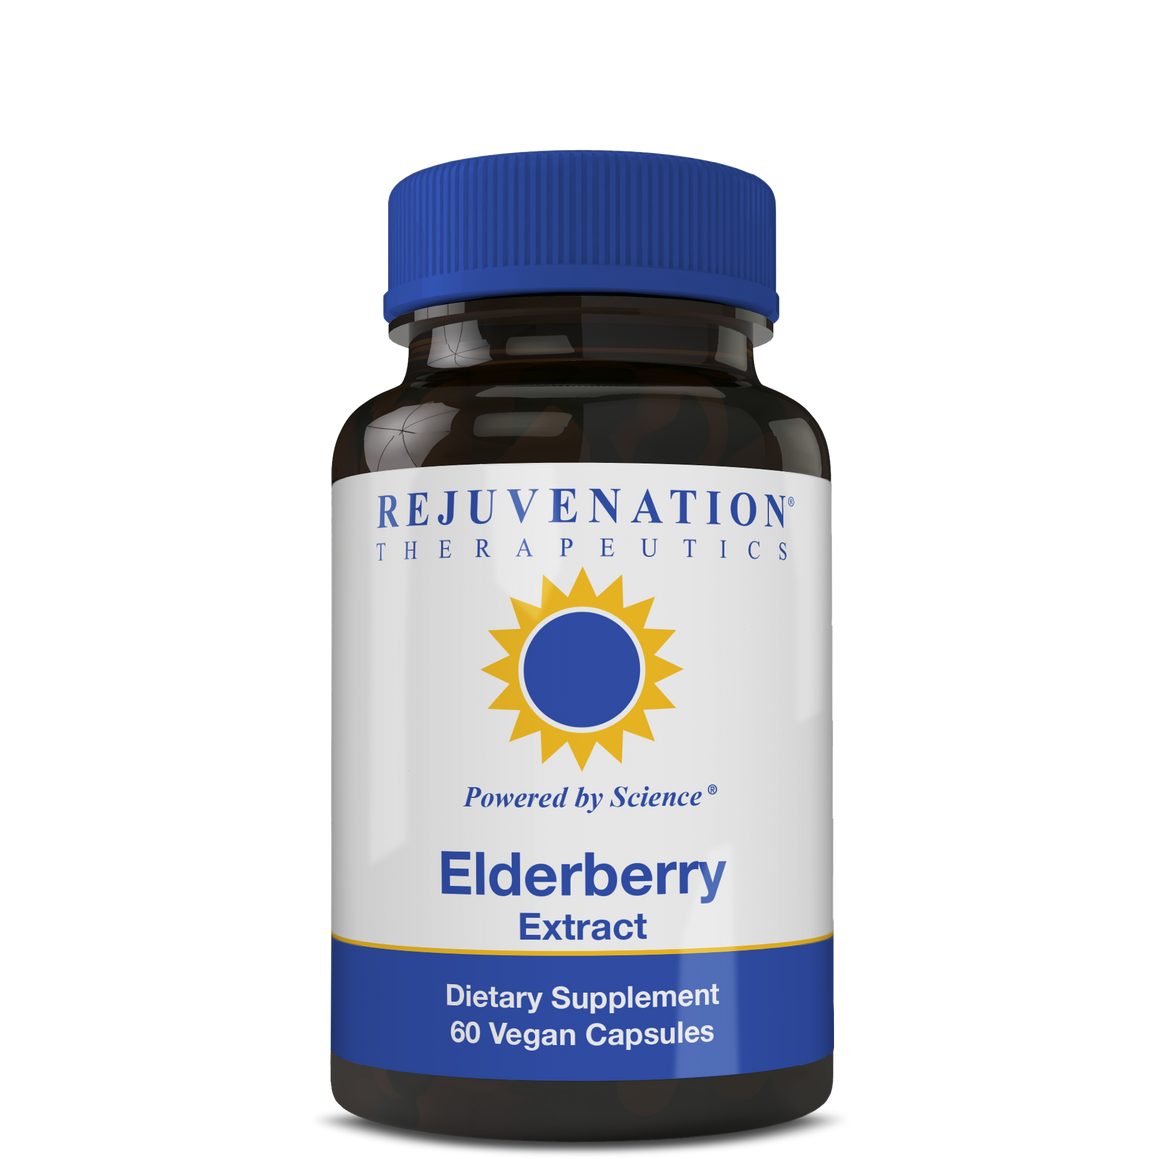 Elderberry Extract (250 mg, 120 Vegan Capsules) - Supports Healthy Immune Response, Non-GMO, Gluten-Free